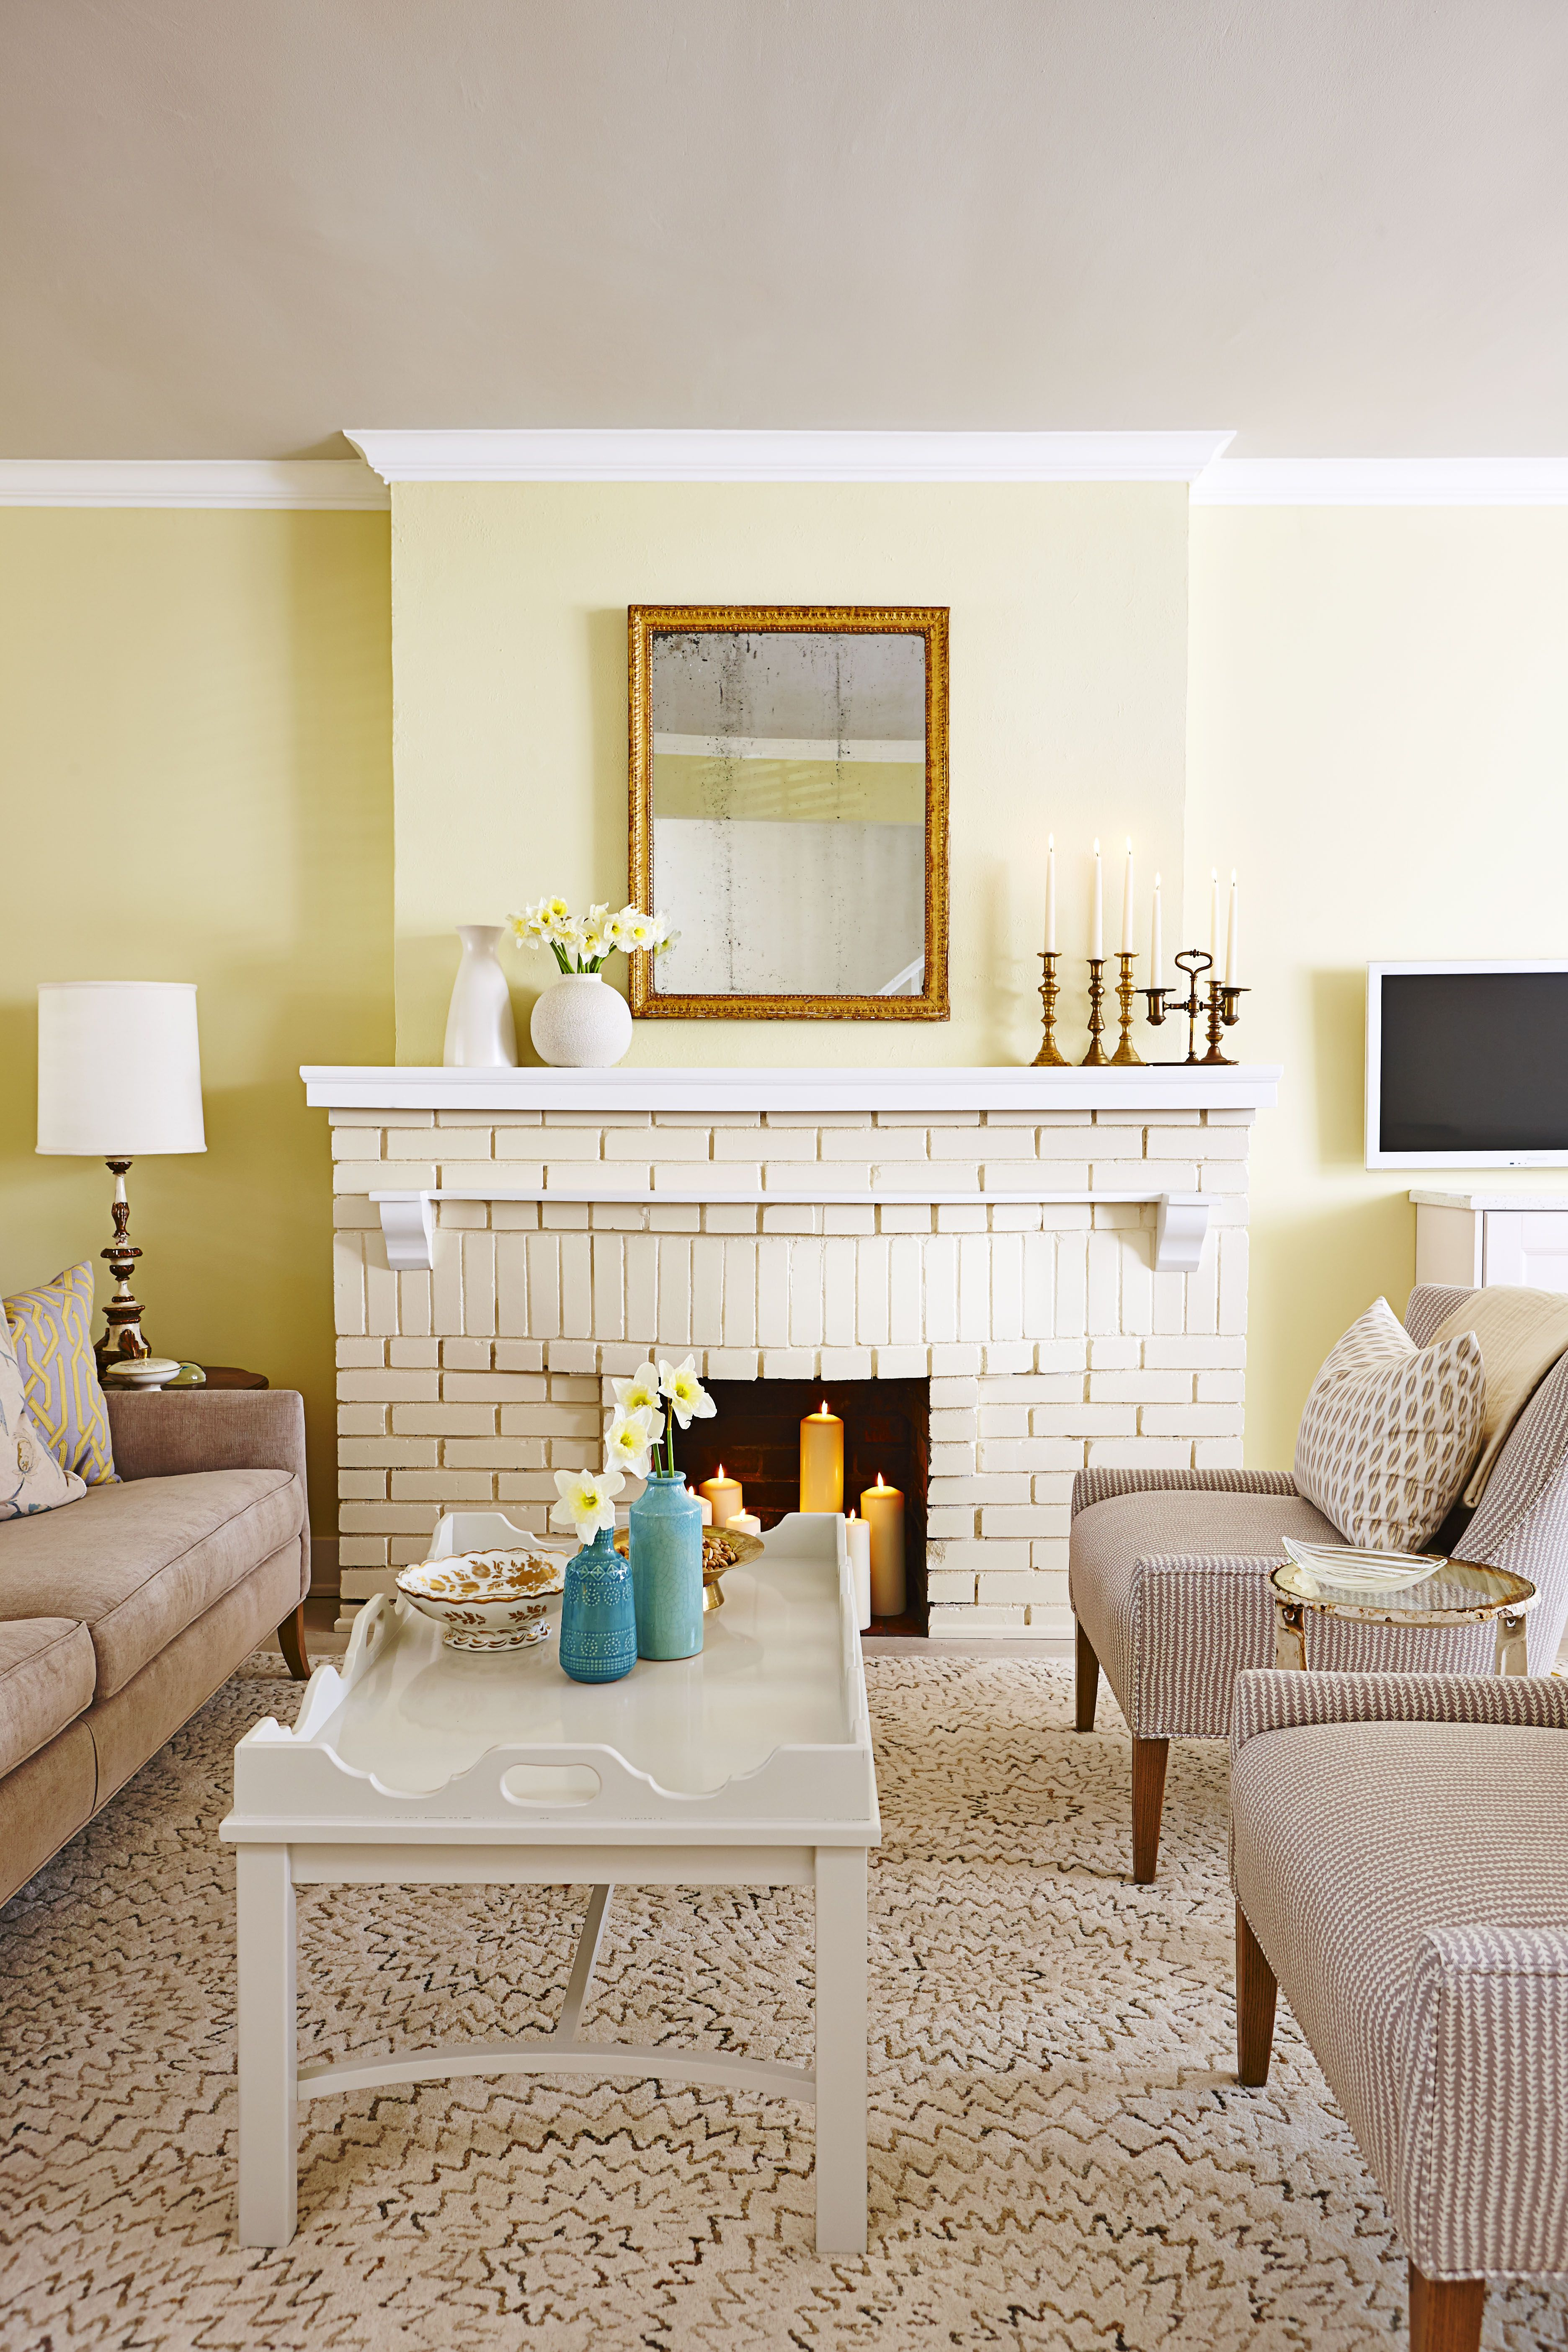 18 Fireplace Decorating Ideas - Best Fireplace Design Inspiration